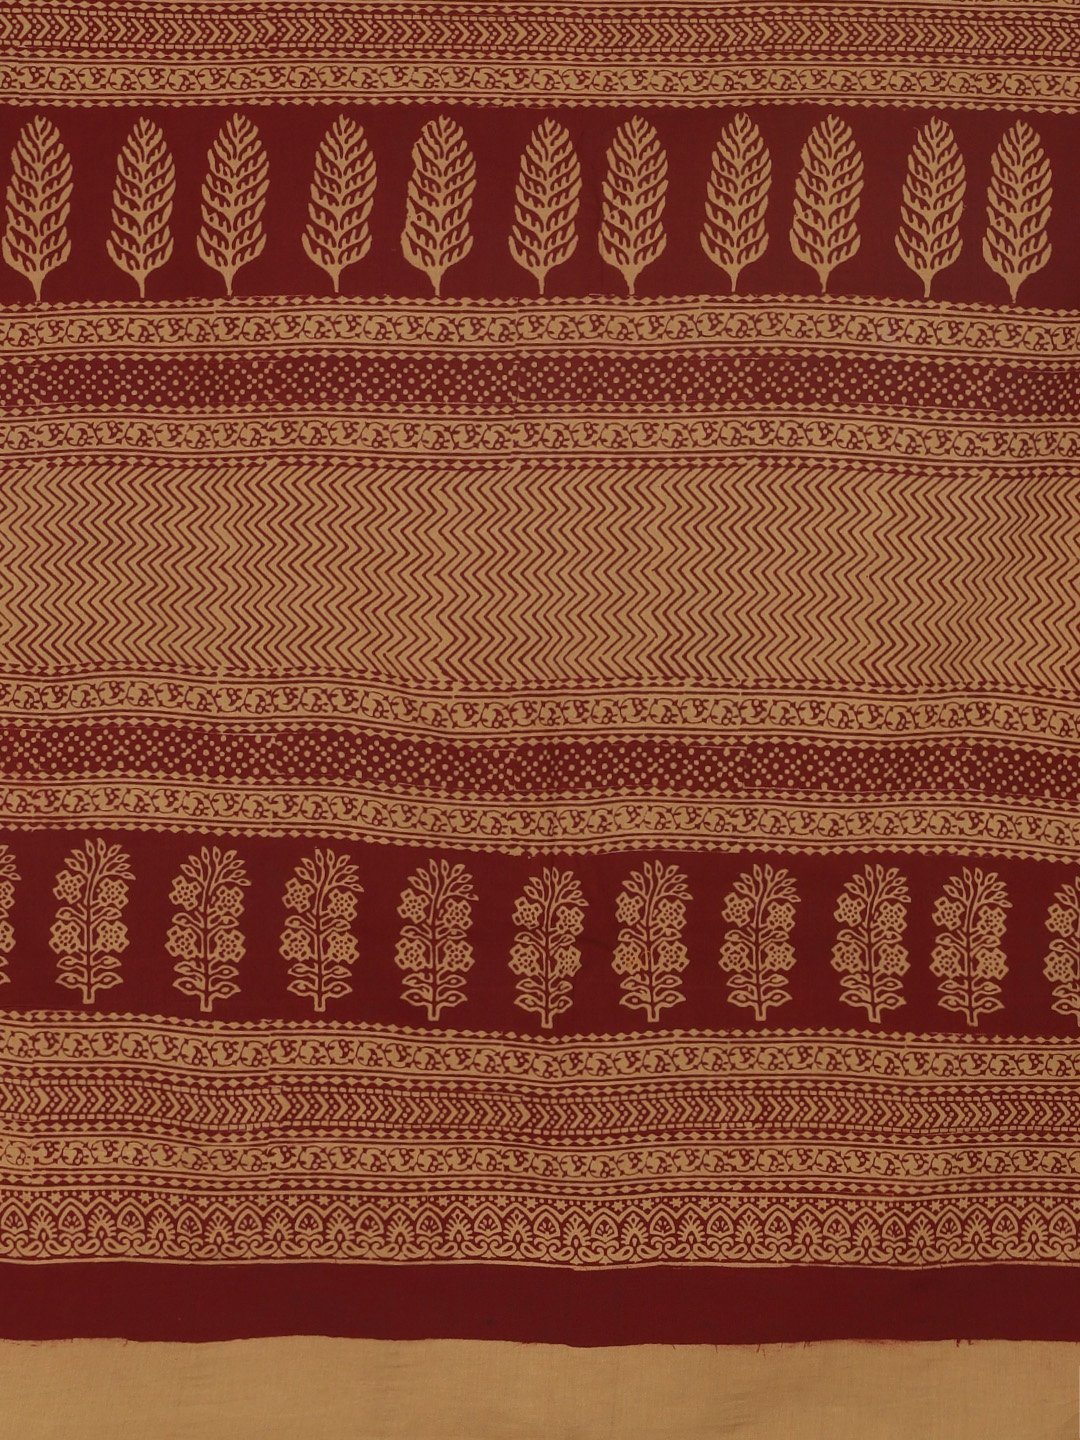 Brown Maroon Handblock Print Bagh Saree-Saree-Kalakari India-MRBASA0002-Bagh, Cotton, Geographical Indication, Hand Blocks, Hand Crafted, Heritage Prints, Natural Dyes, Sarees, Sustainable Fabrics-[Linen,Ethnic,wear,Fashionista,Handloom,Handicraft,Indigo,blockprint,block,print,Cotton,Chanderi,Blue, latest,classy,party,bollywood,trendy,summer,style,traditional,formal,elegant,unique,style,hand,block,print, dabu,booti,gift,present,glamorous,affordable,collectible,Sari,Saree,printed, holi, Diwali, b